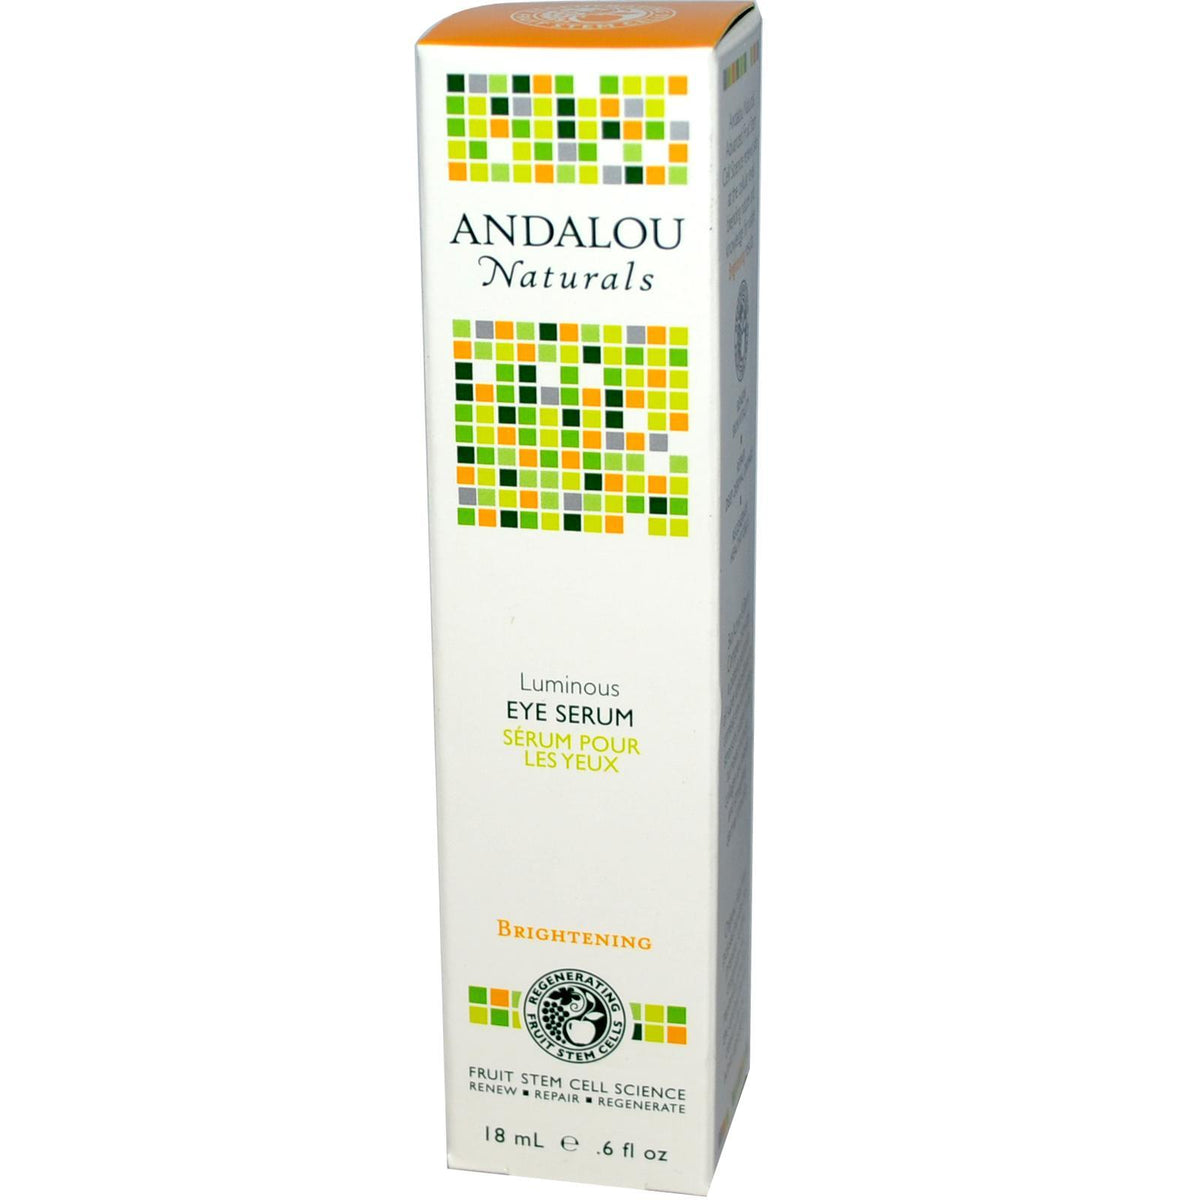 Andalou Naturals Luminous Eye Serum (1x.60 Oz)